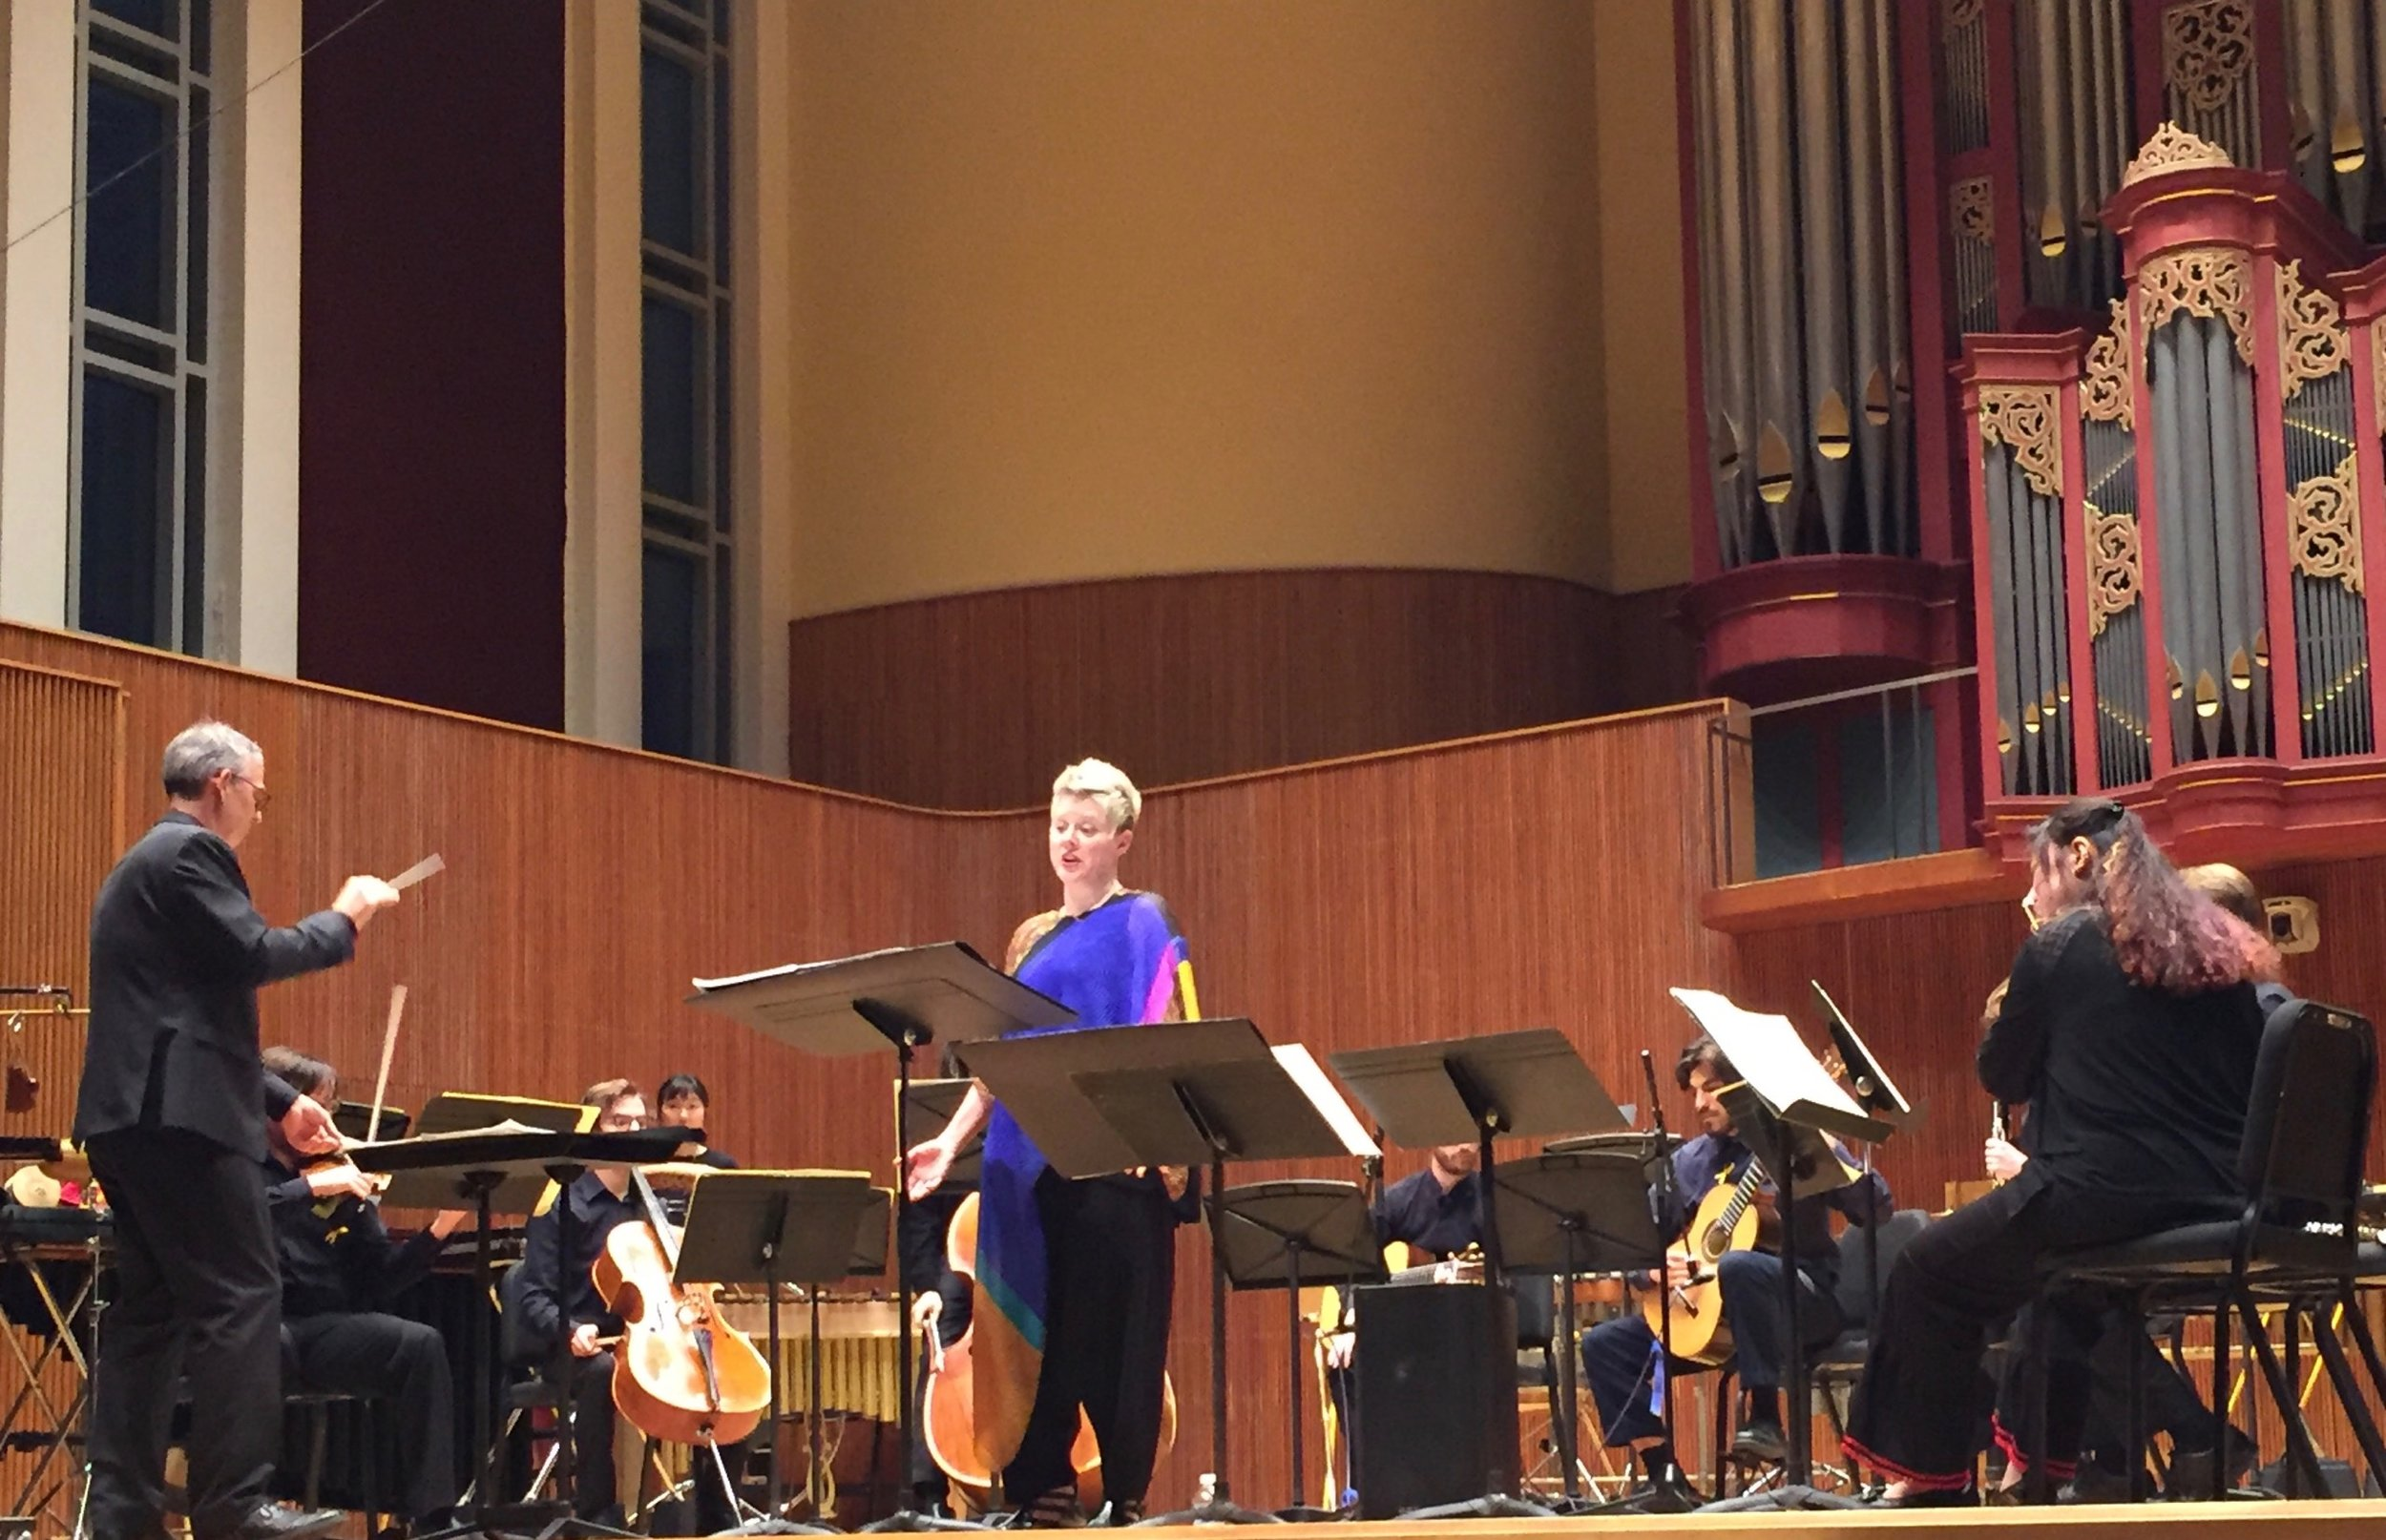 Tim Weiss conducts, Tony Arnold sings; guitarist Mohit Dubey partially visible.